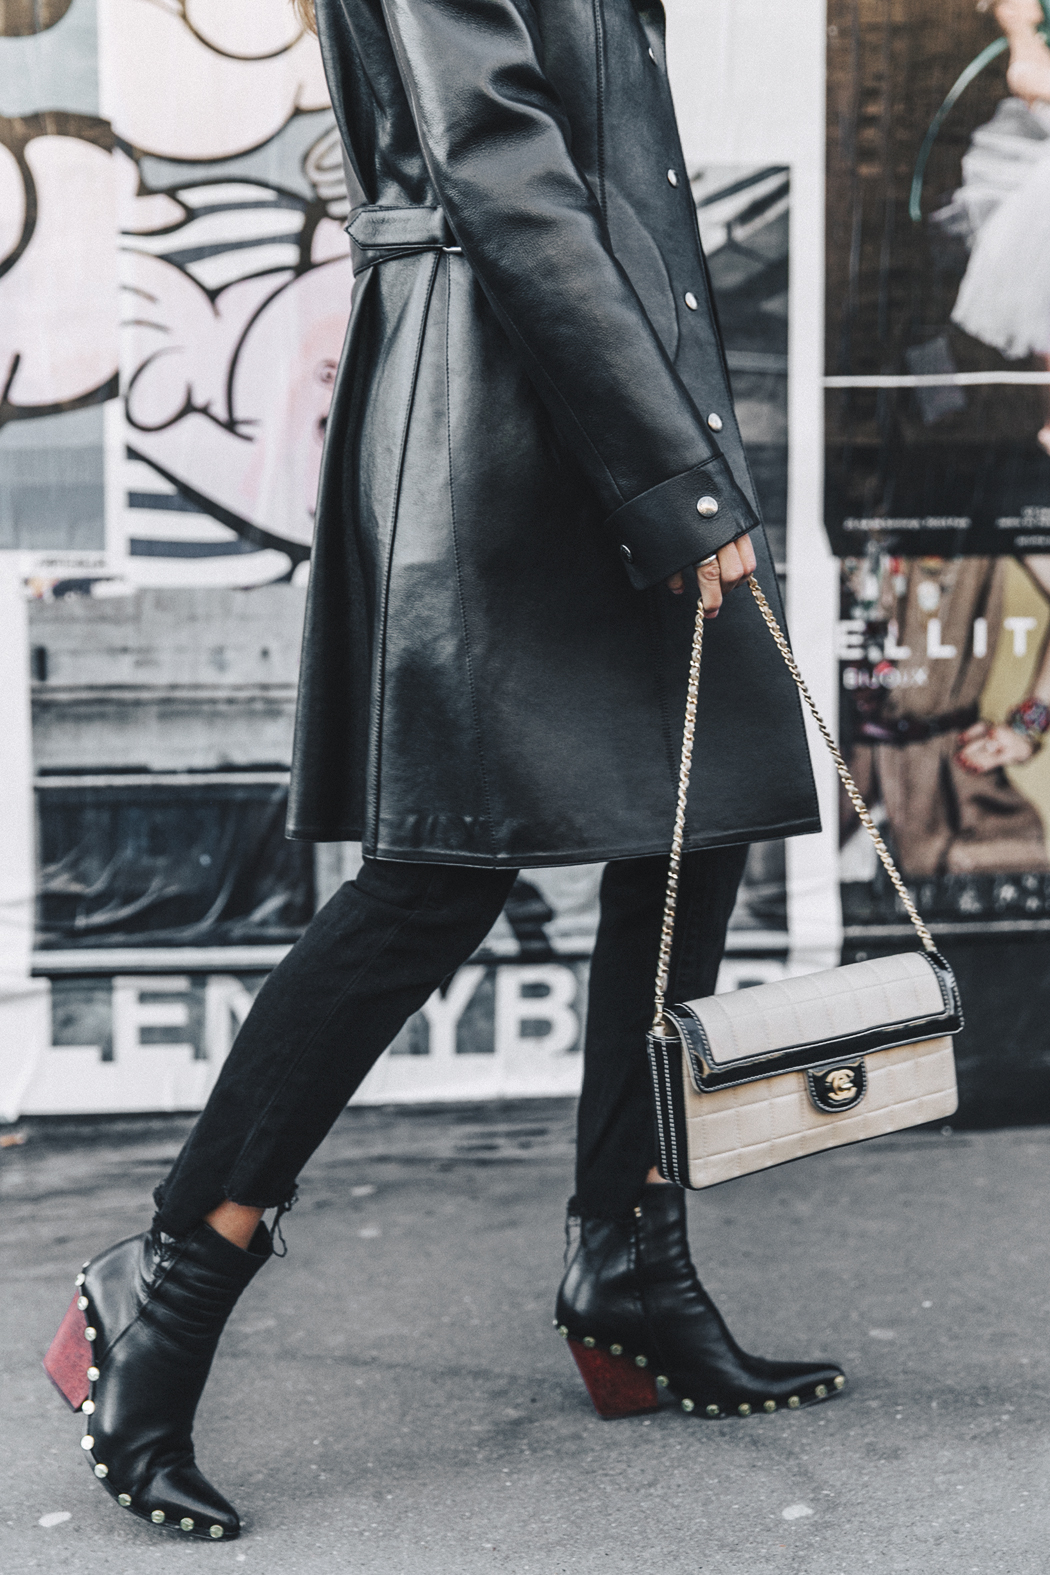 Vestiaire_Collective-Louis_Vuitton_Leather_Coat-Black_and_White-Chanel_Vintage-Celine_Boots-Street_Style-Outfit-PFW-23